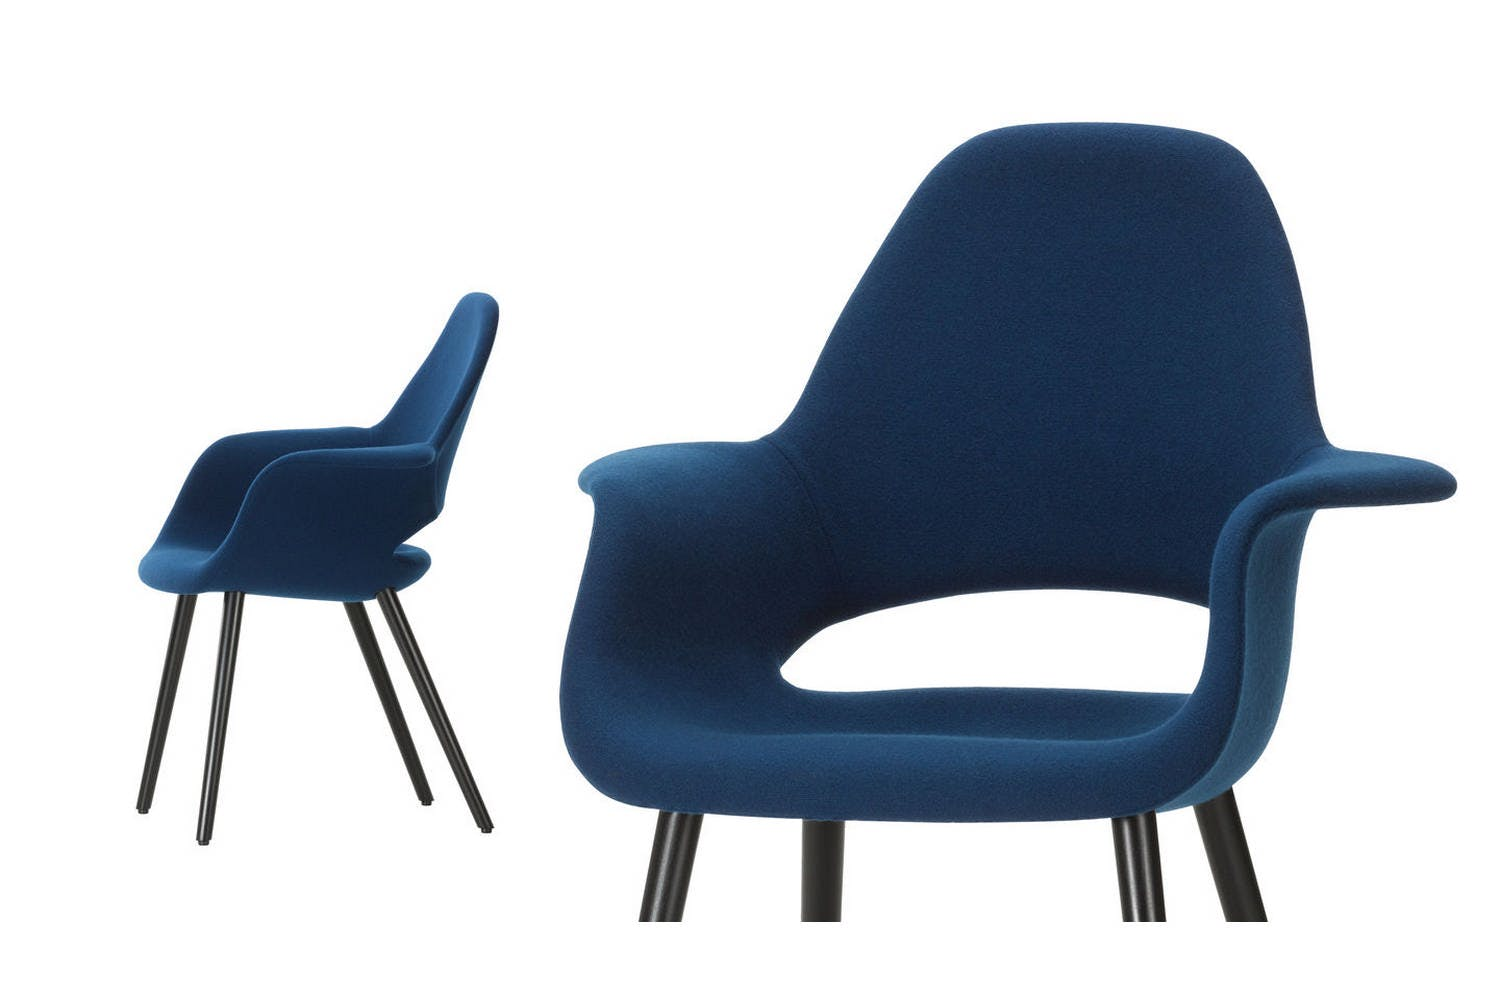 Vitra Chalres Eames : Organic conference chair with arms by charles eames & eero saarinen